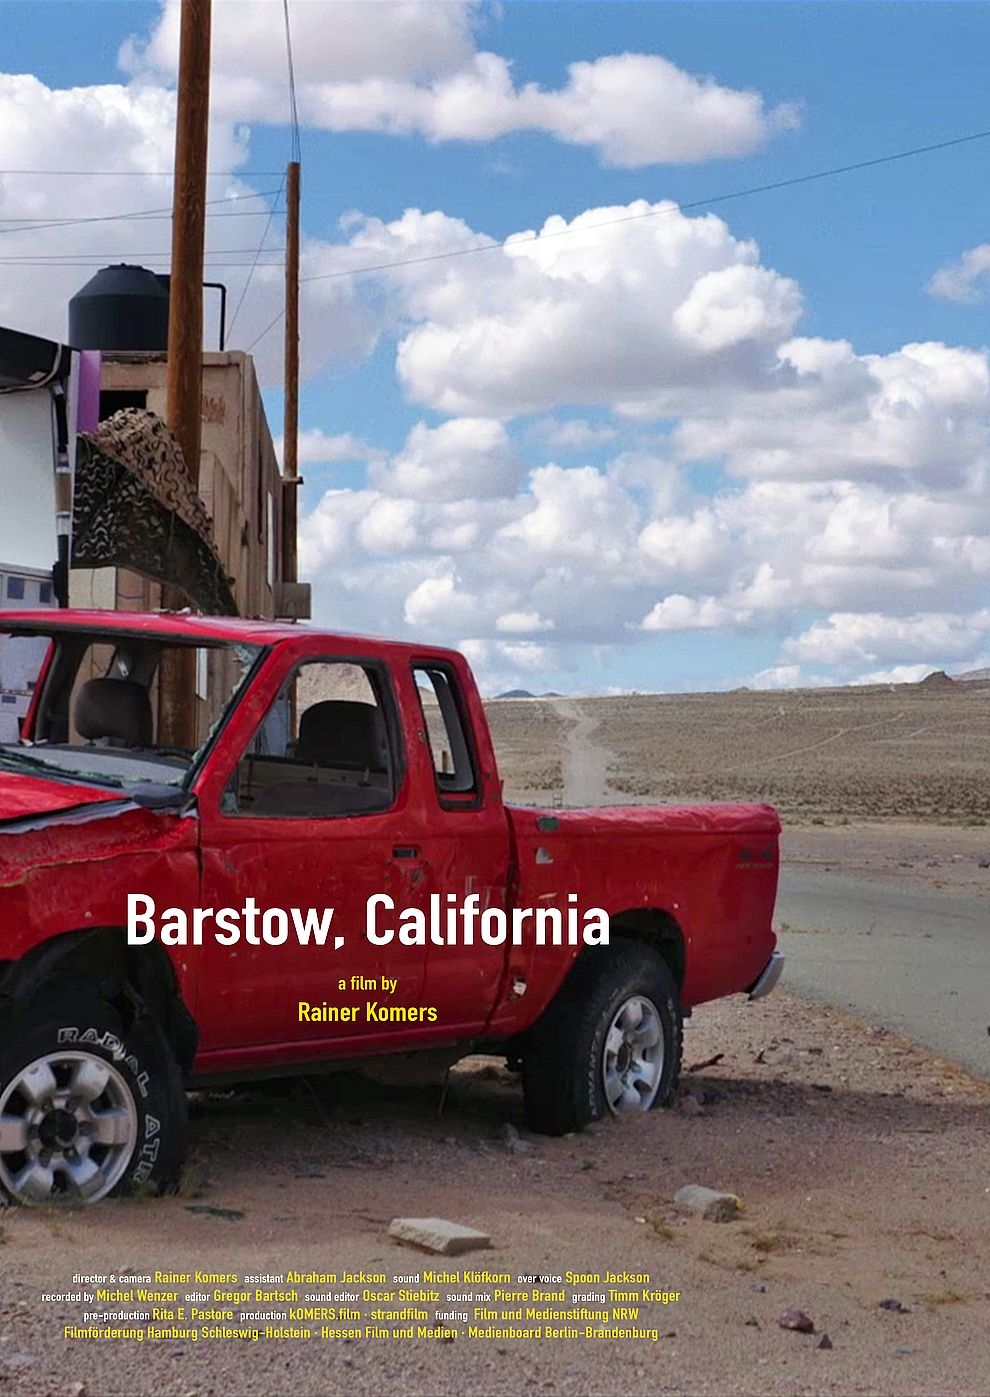 Barstow, California (Poster)